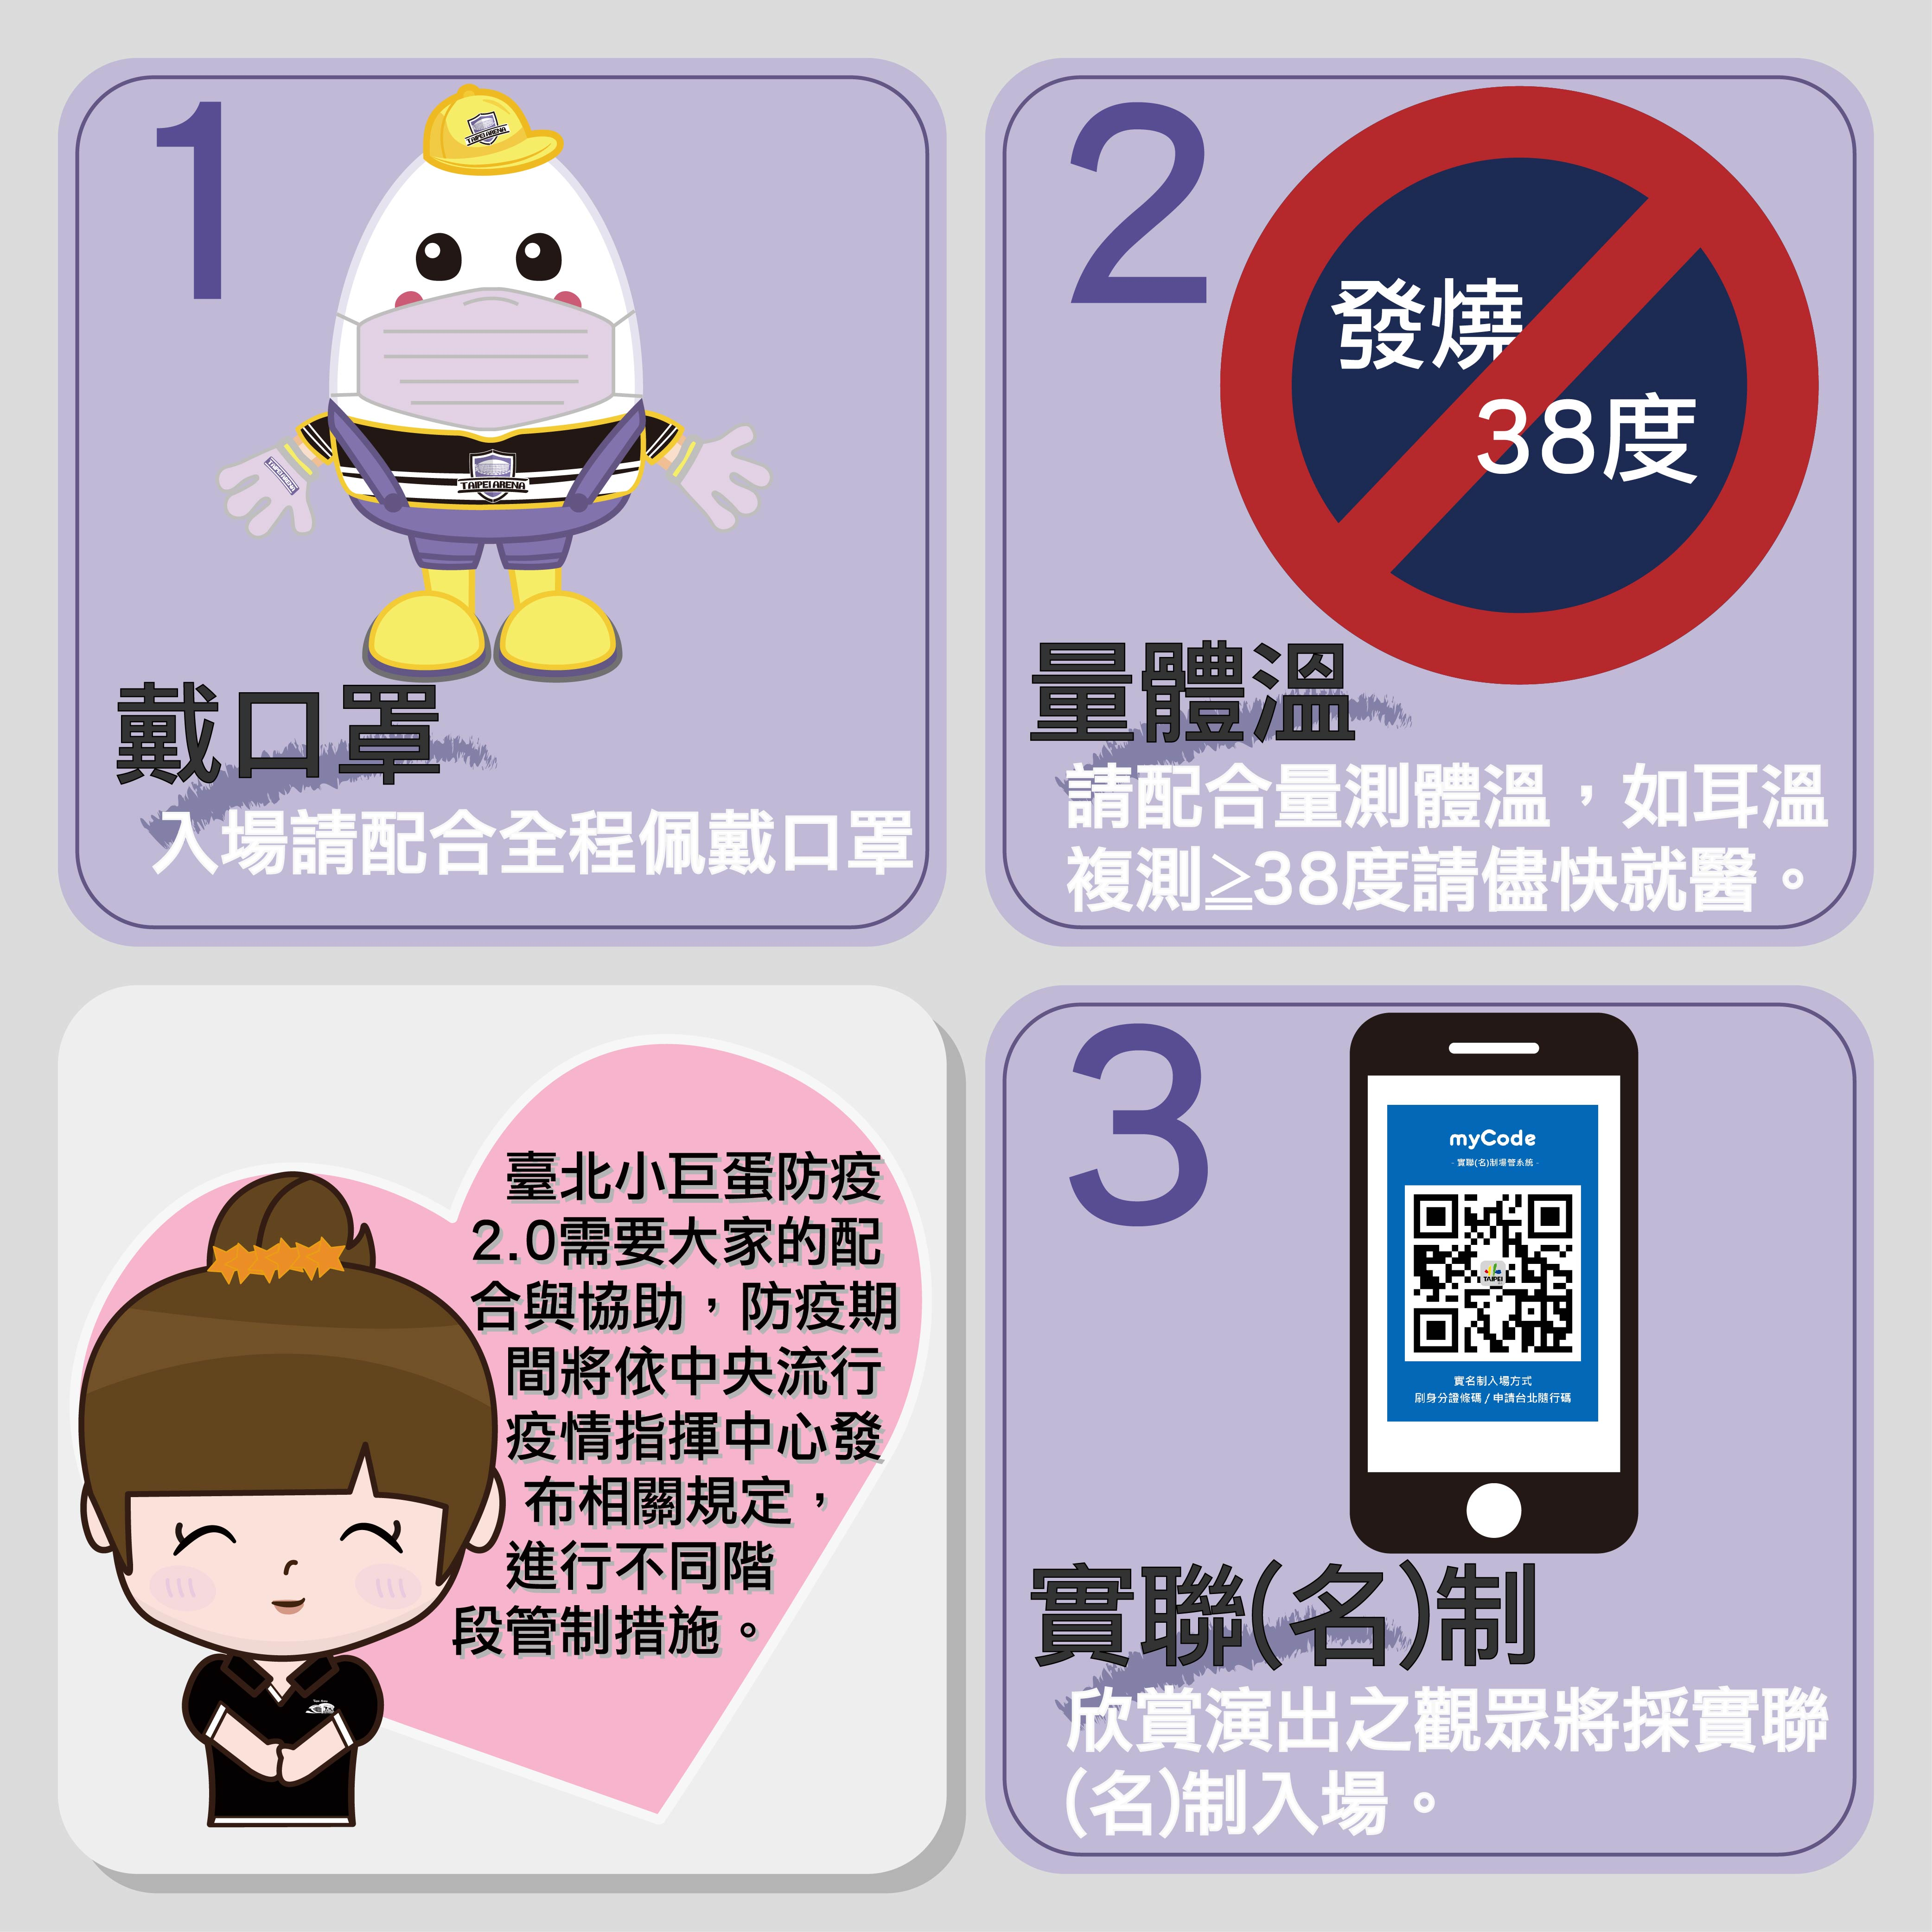 Promotion poster for visitor's COVID-19 prevention measures